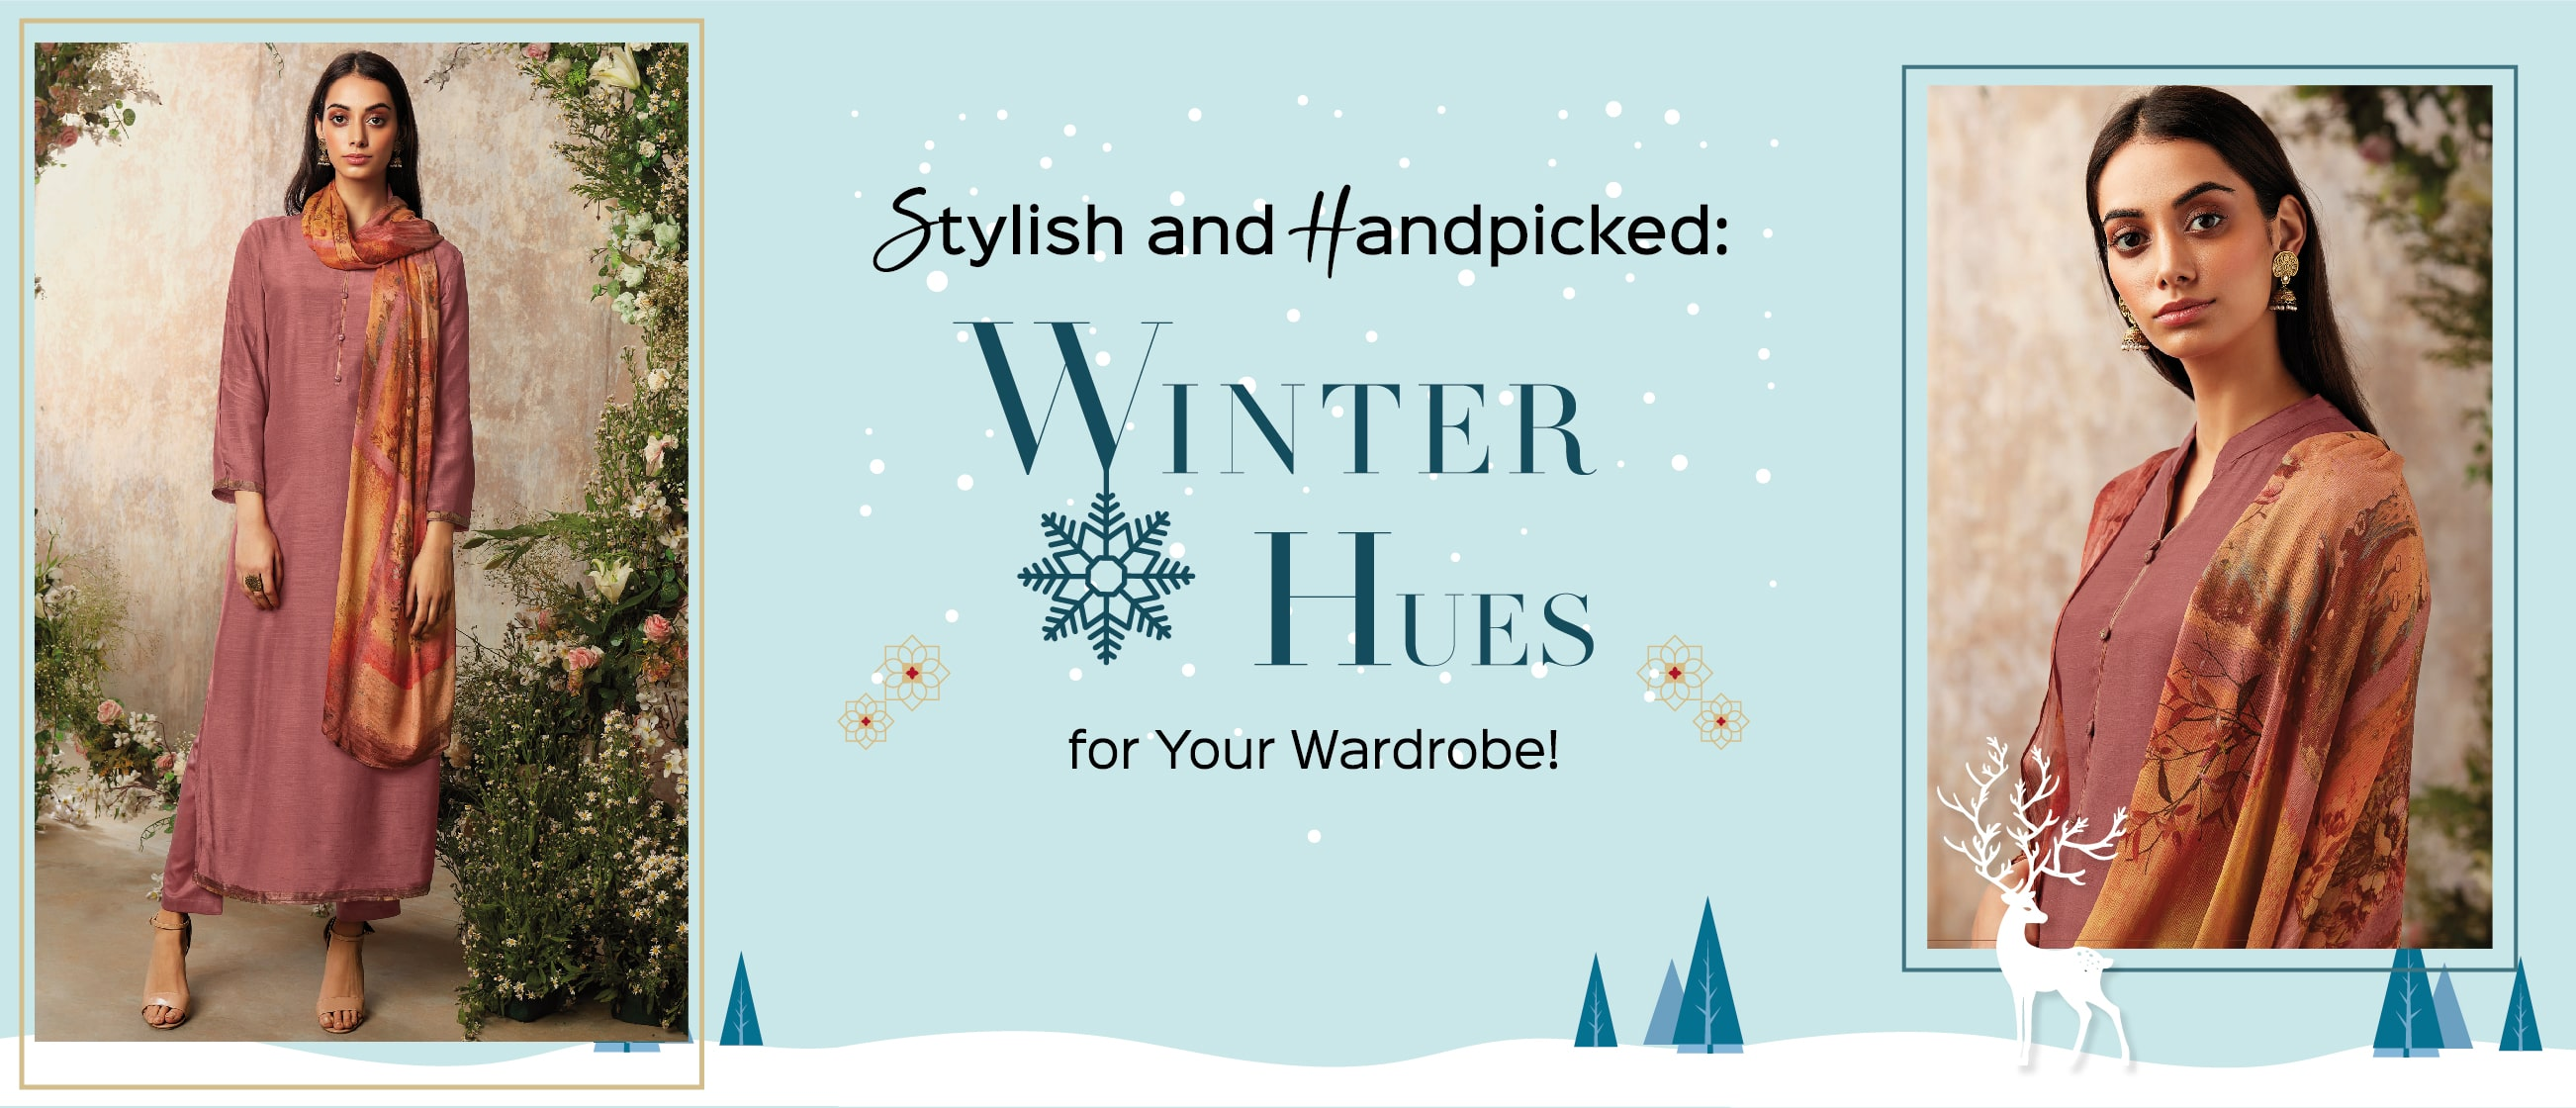 Stylish and Handpicked: Winter Hues for Your Wardrobe